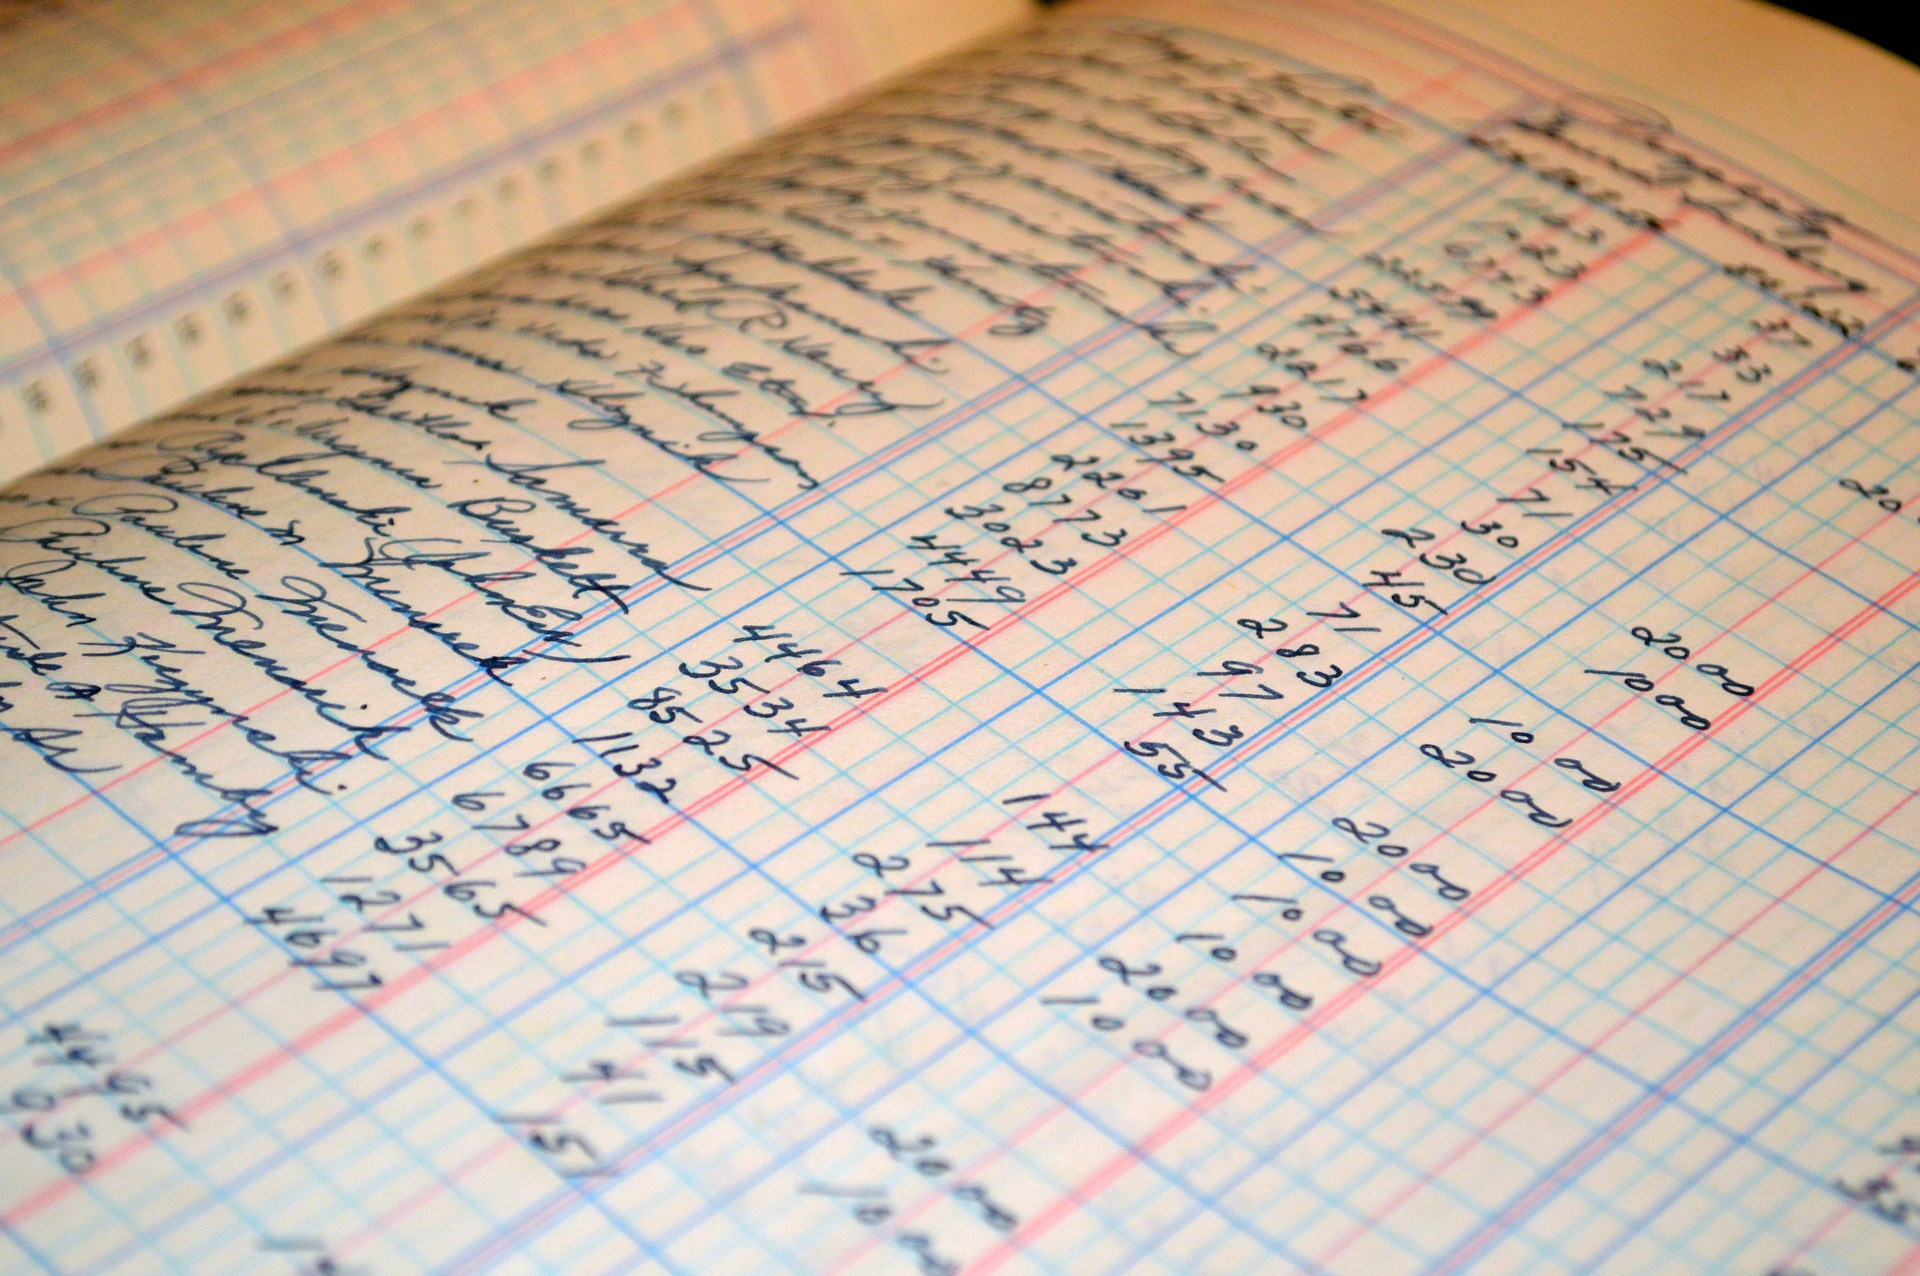 Ledgers and Spreadsheets can't handle complex inventory planning solutions quickly or accurately